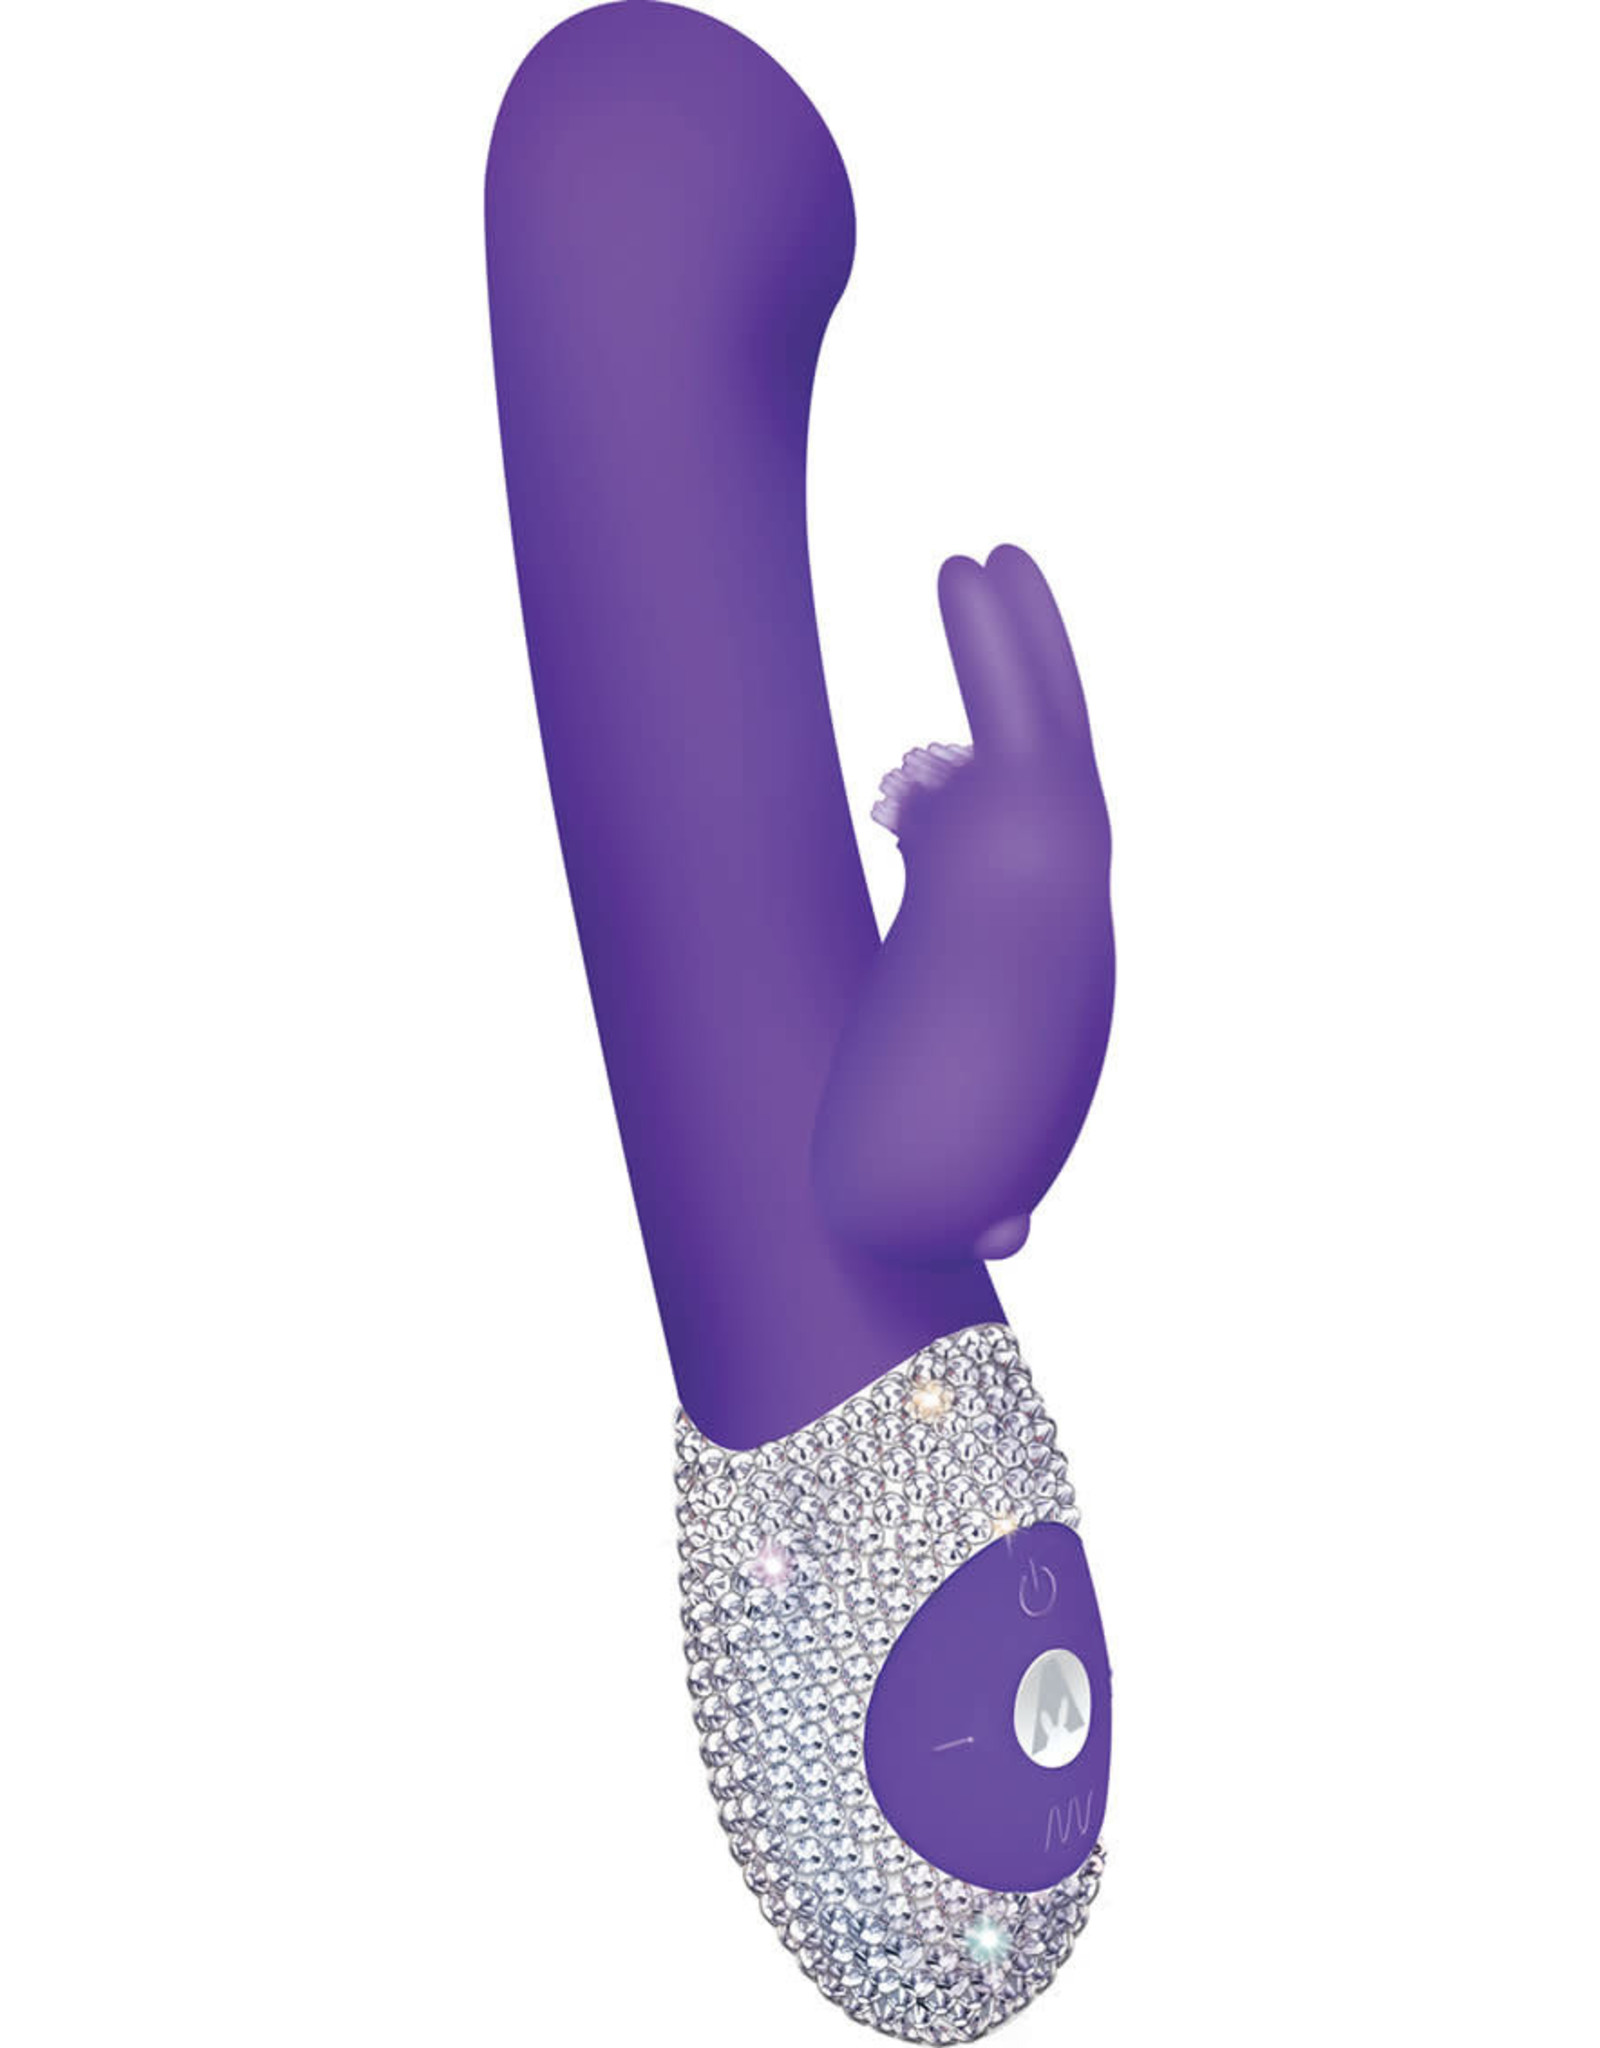 The Rabbit Company The G-Spot Rabbit Crystalized Edition in Purple